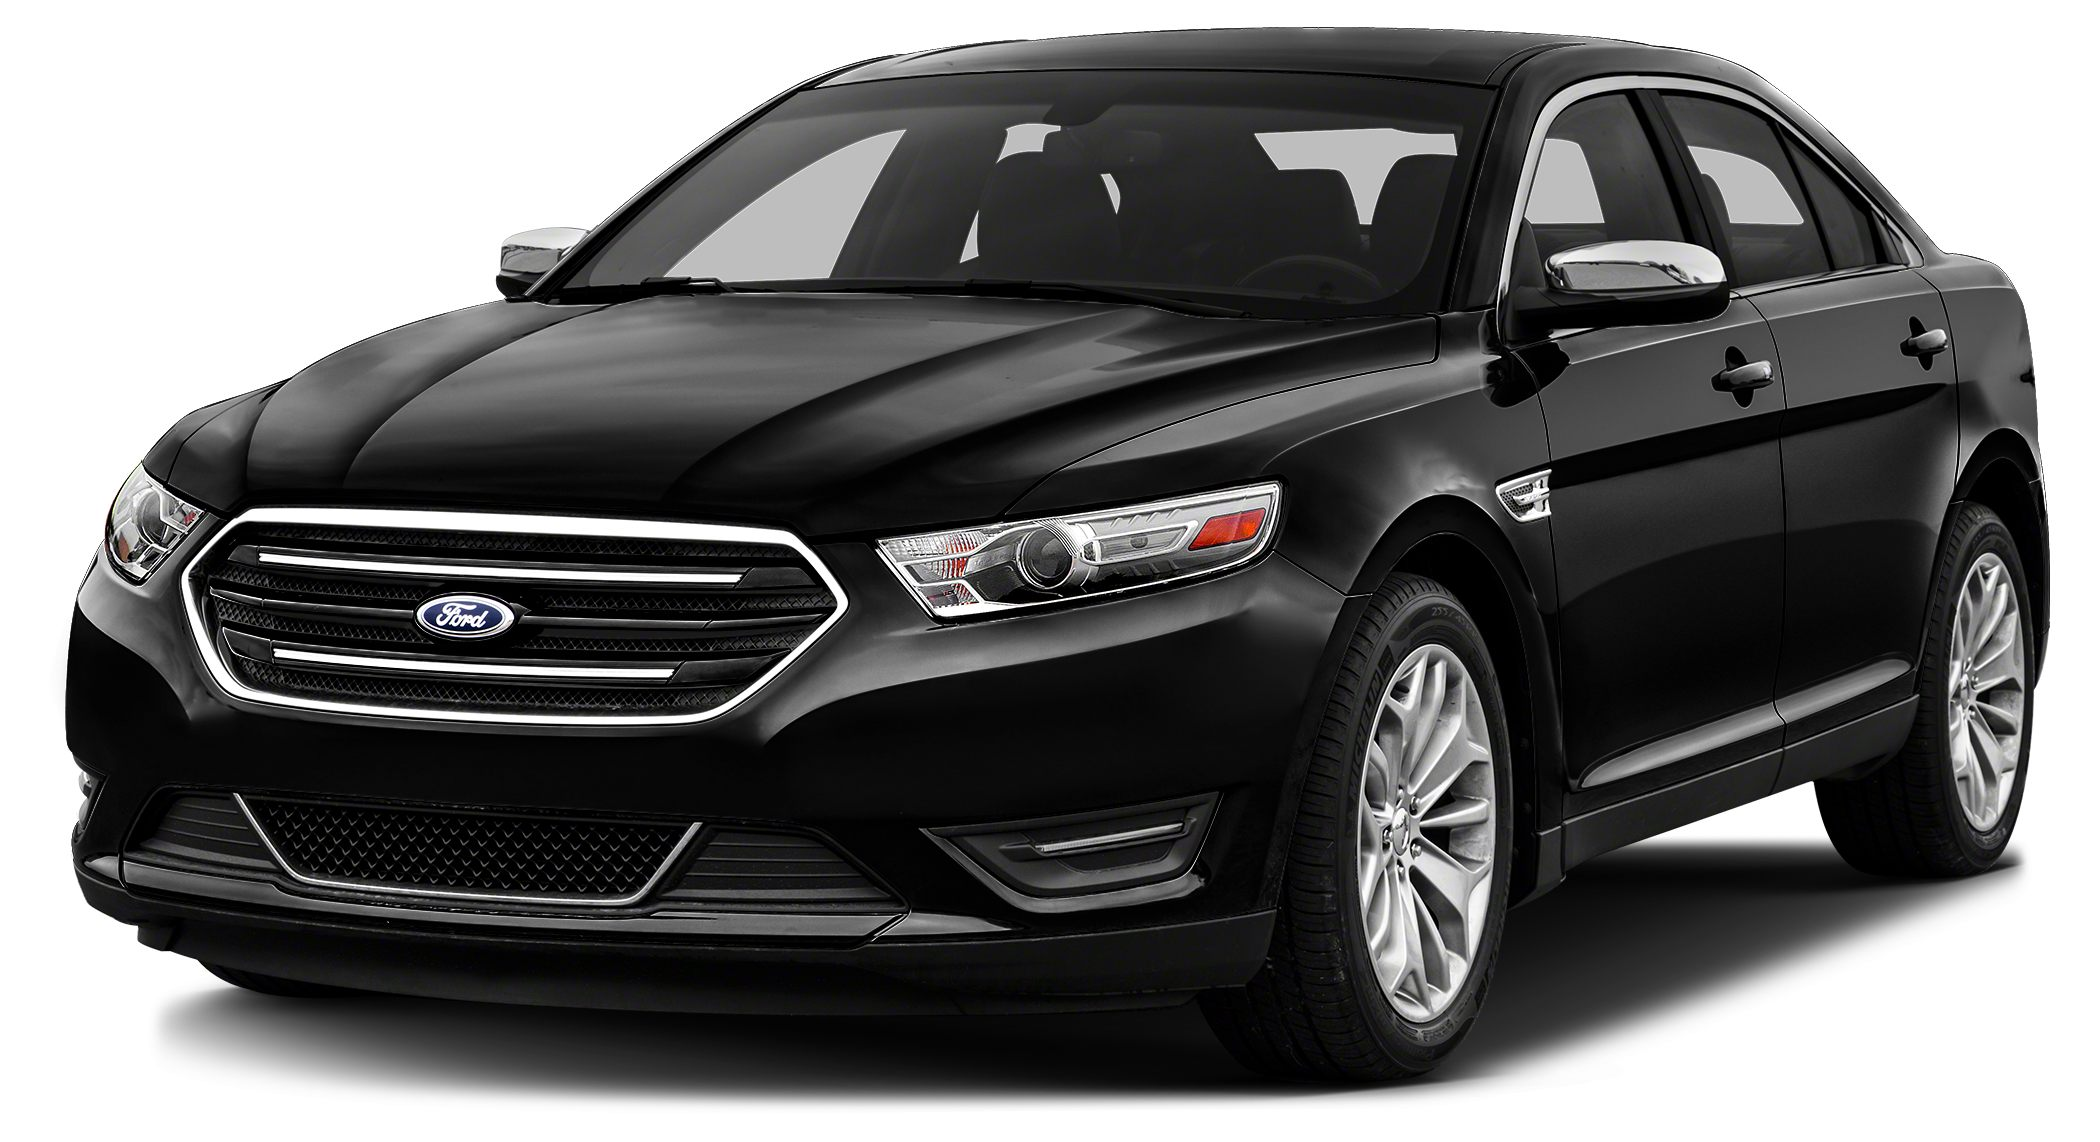 2014 Ford Taurus Limited Limited trim FUEL EFFICIENT 29 MPG Hwy19 MPG City HeatedCooled Leathe